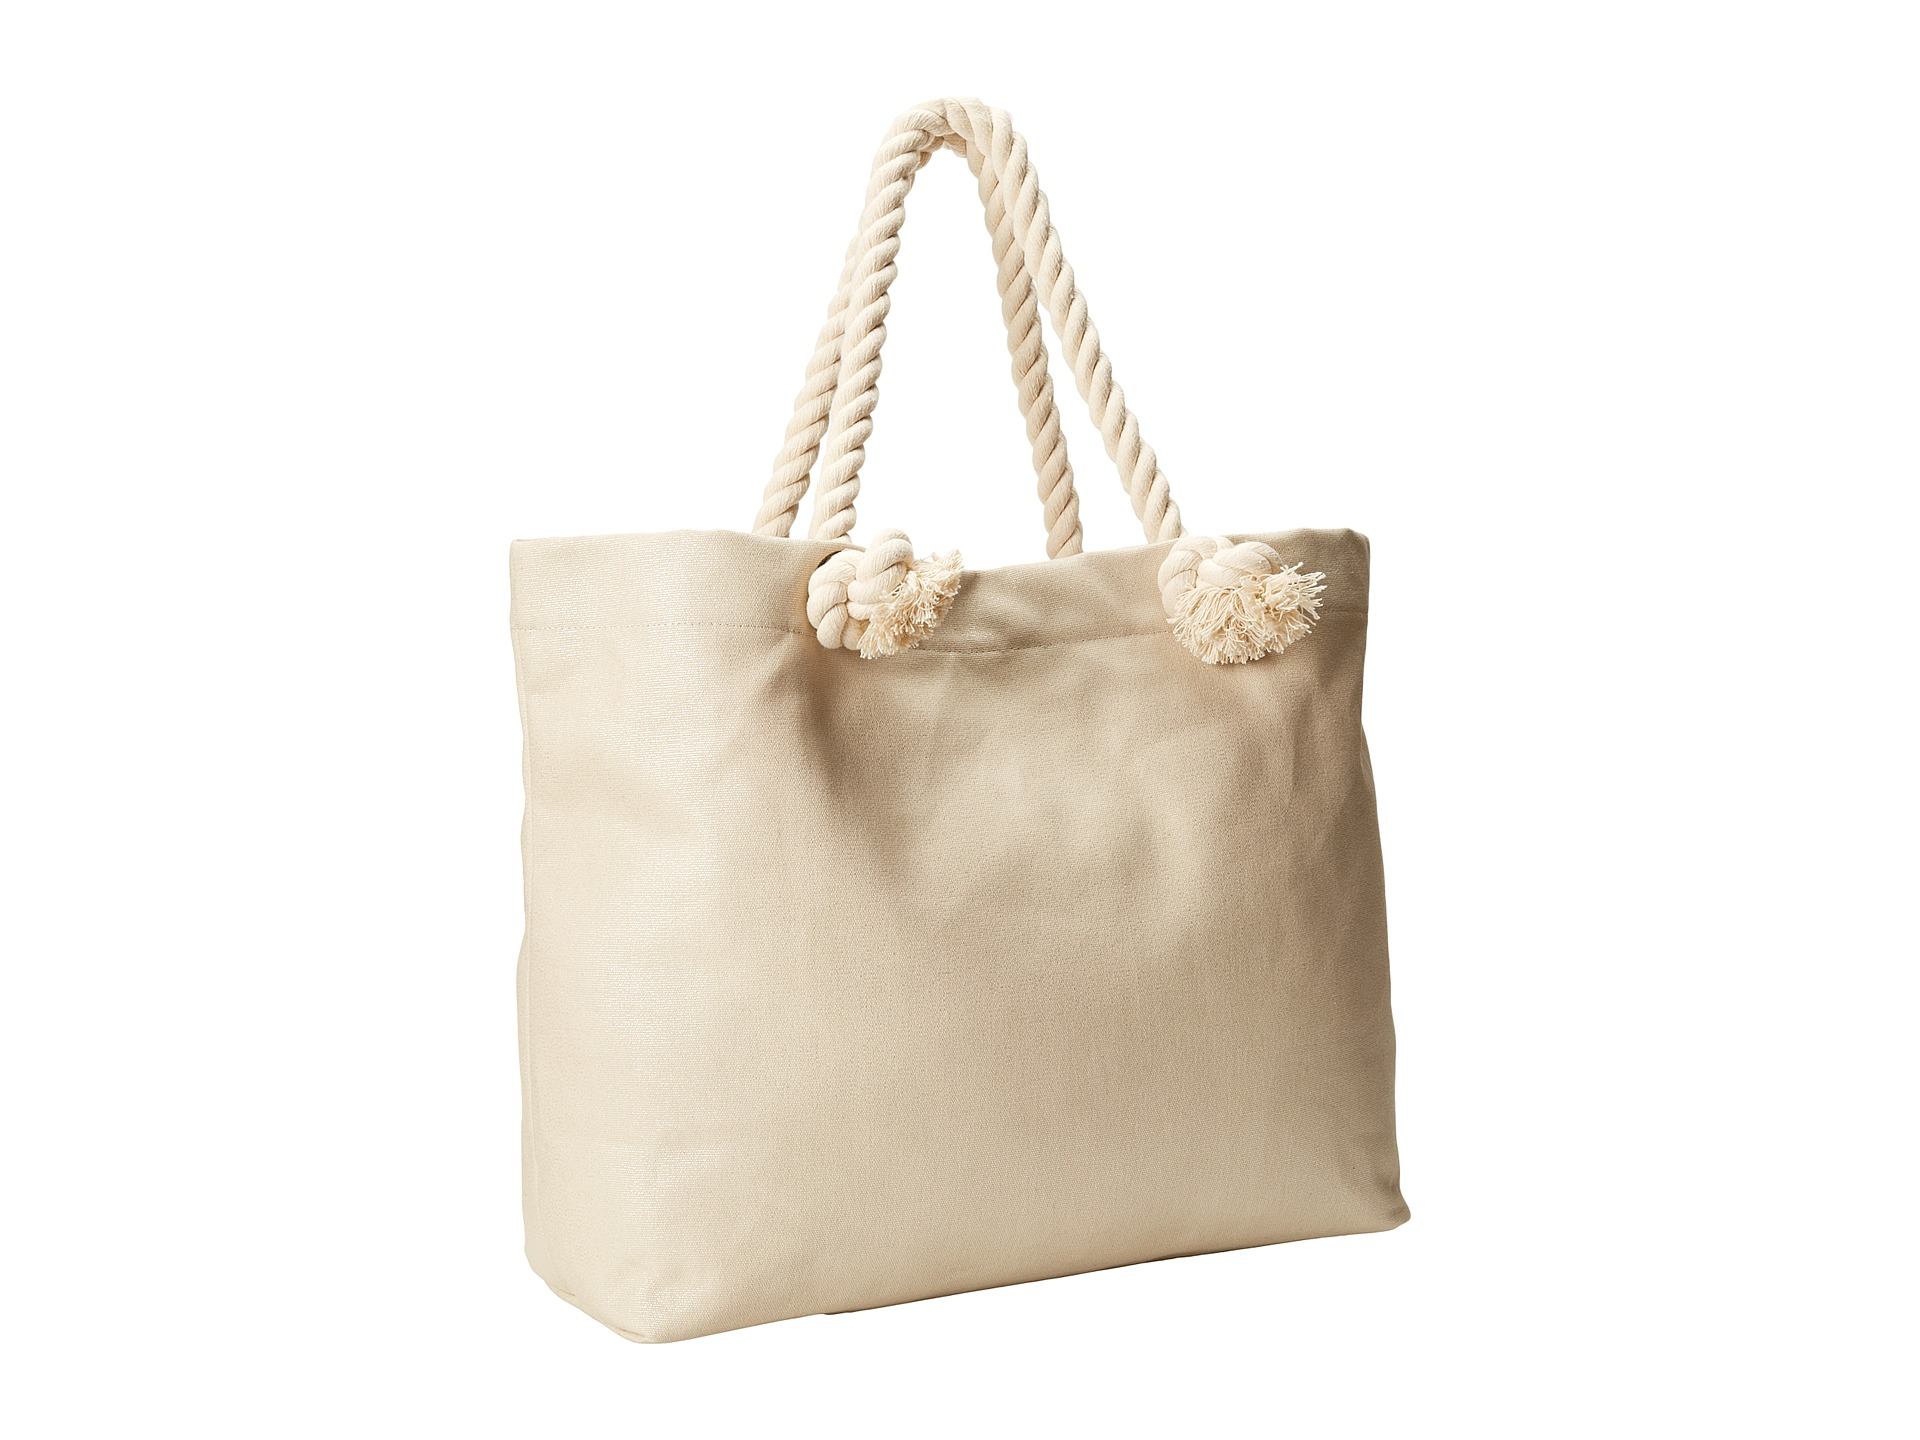 Hat Attack Perfect Canvas Beach Tote w/ Rope Handles - 6pm.com